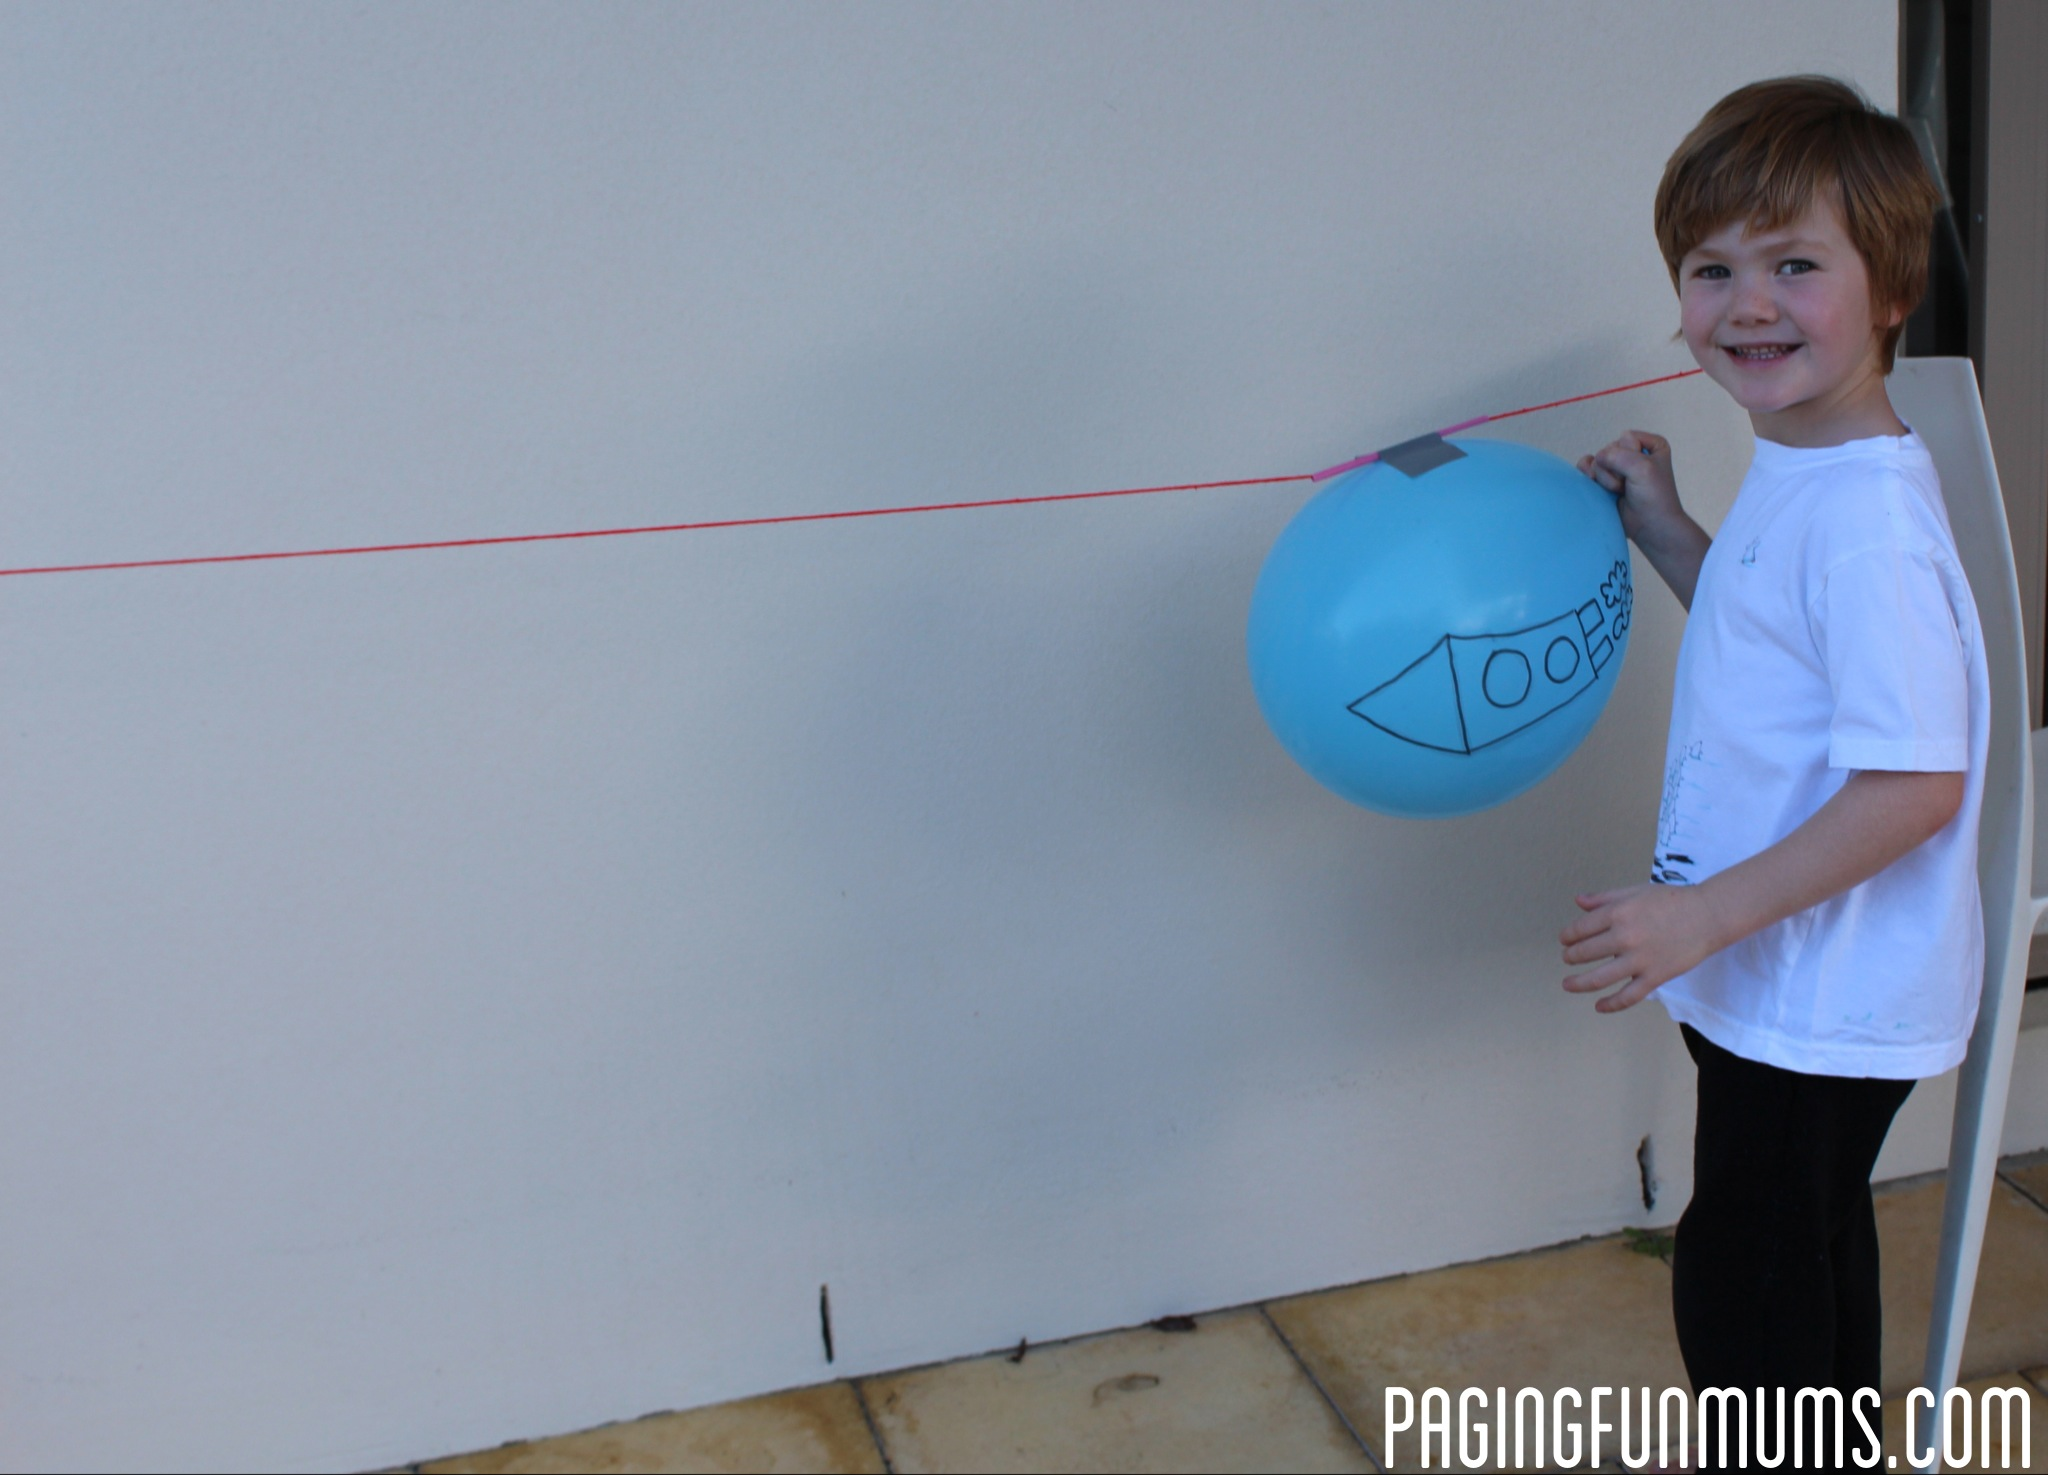 Ballon Rocket - So much Fun!